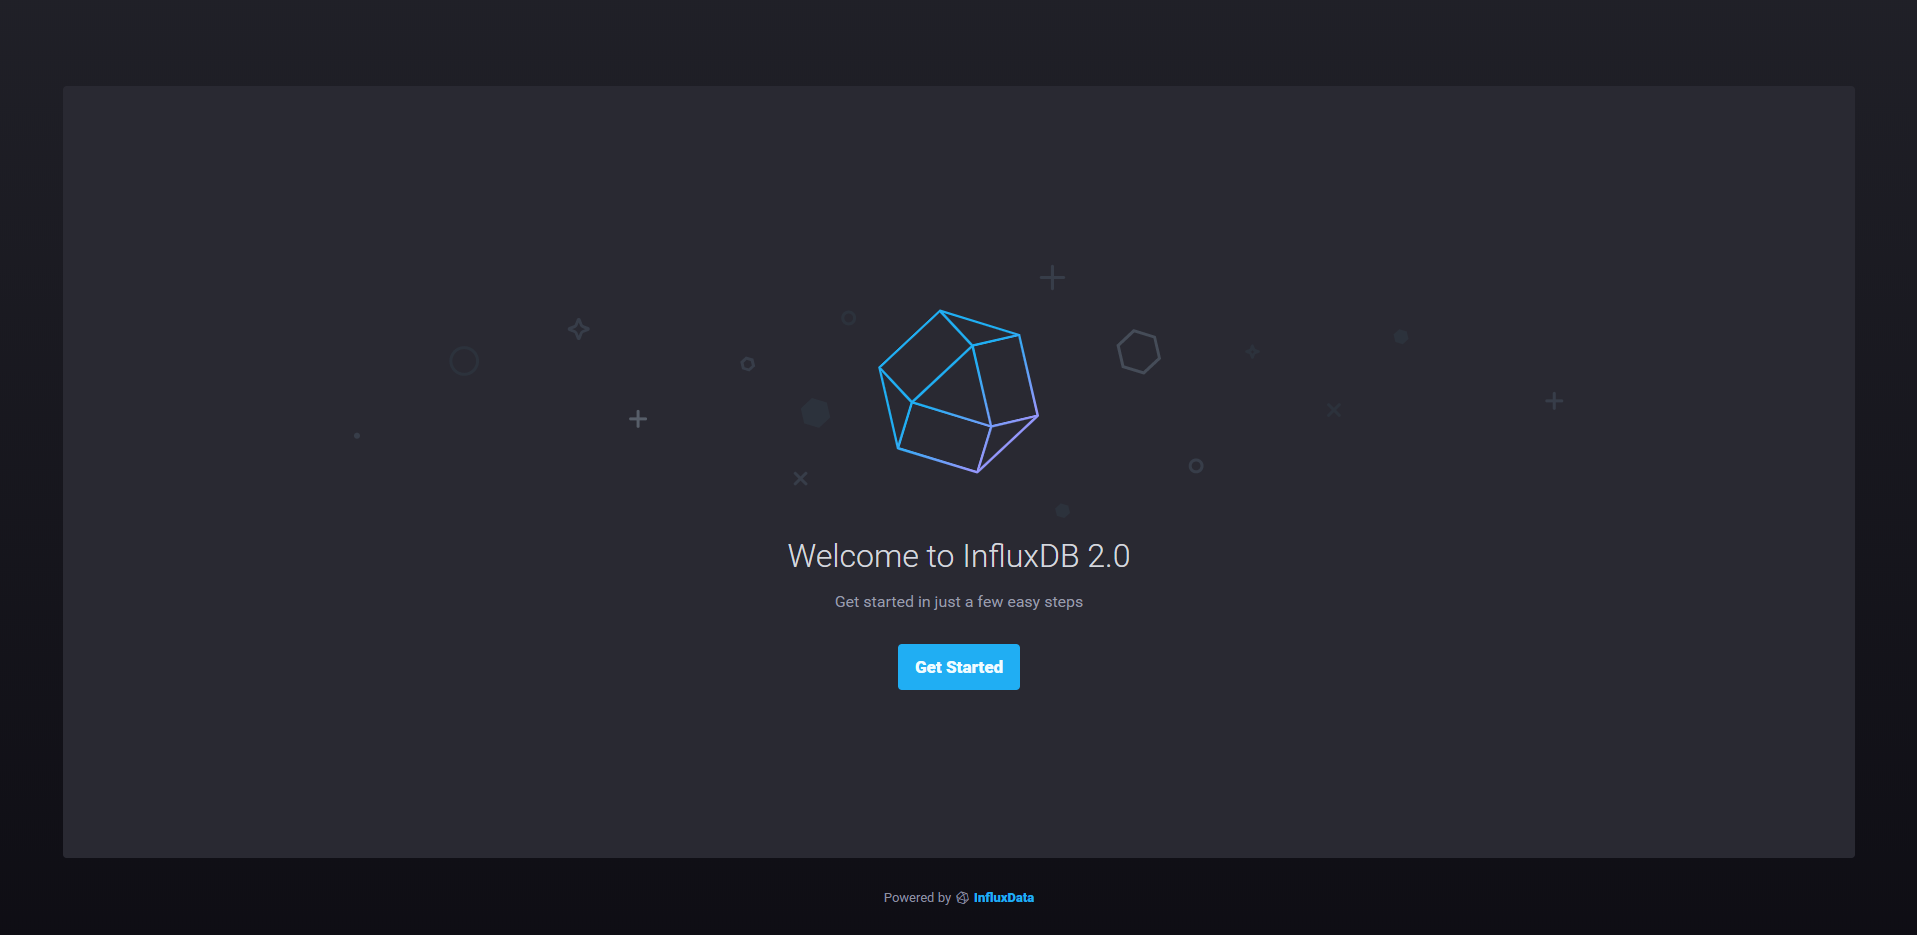 InfluxDB 2.0 setup screen